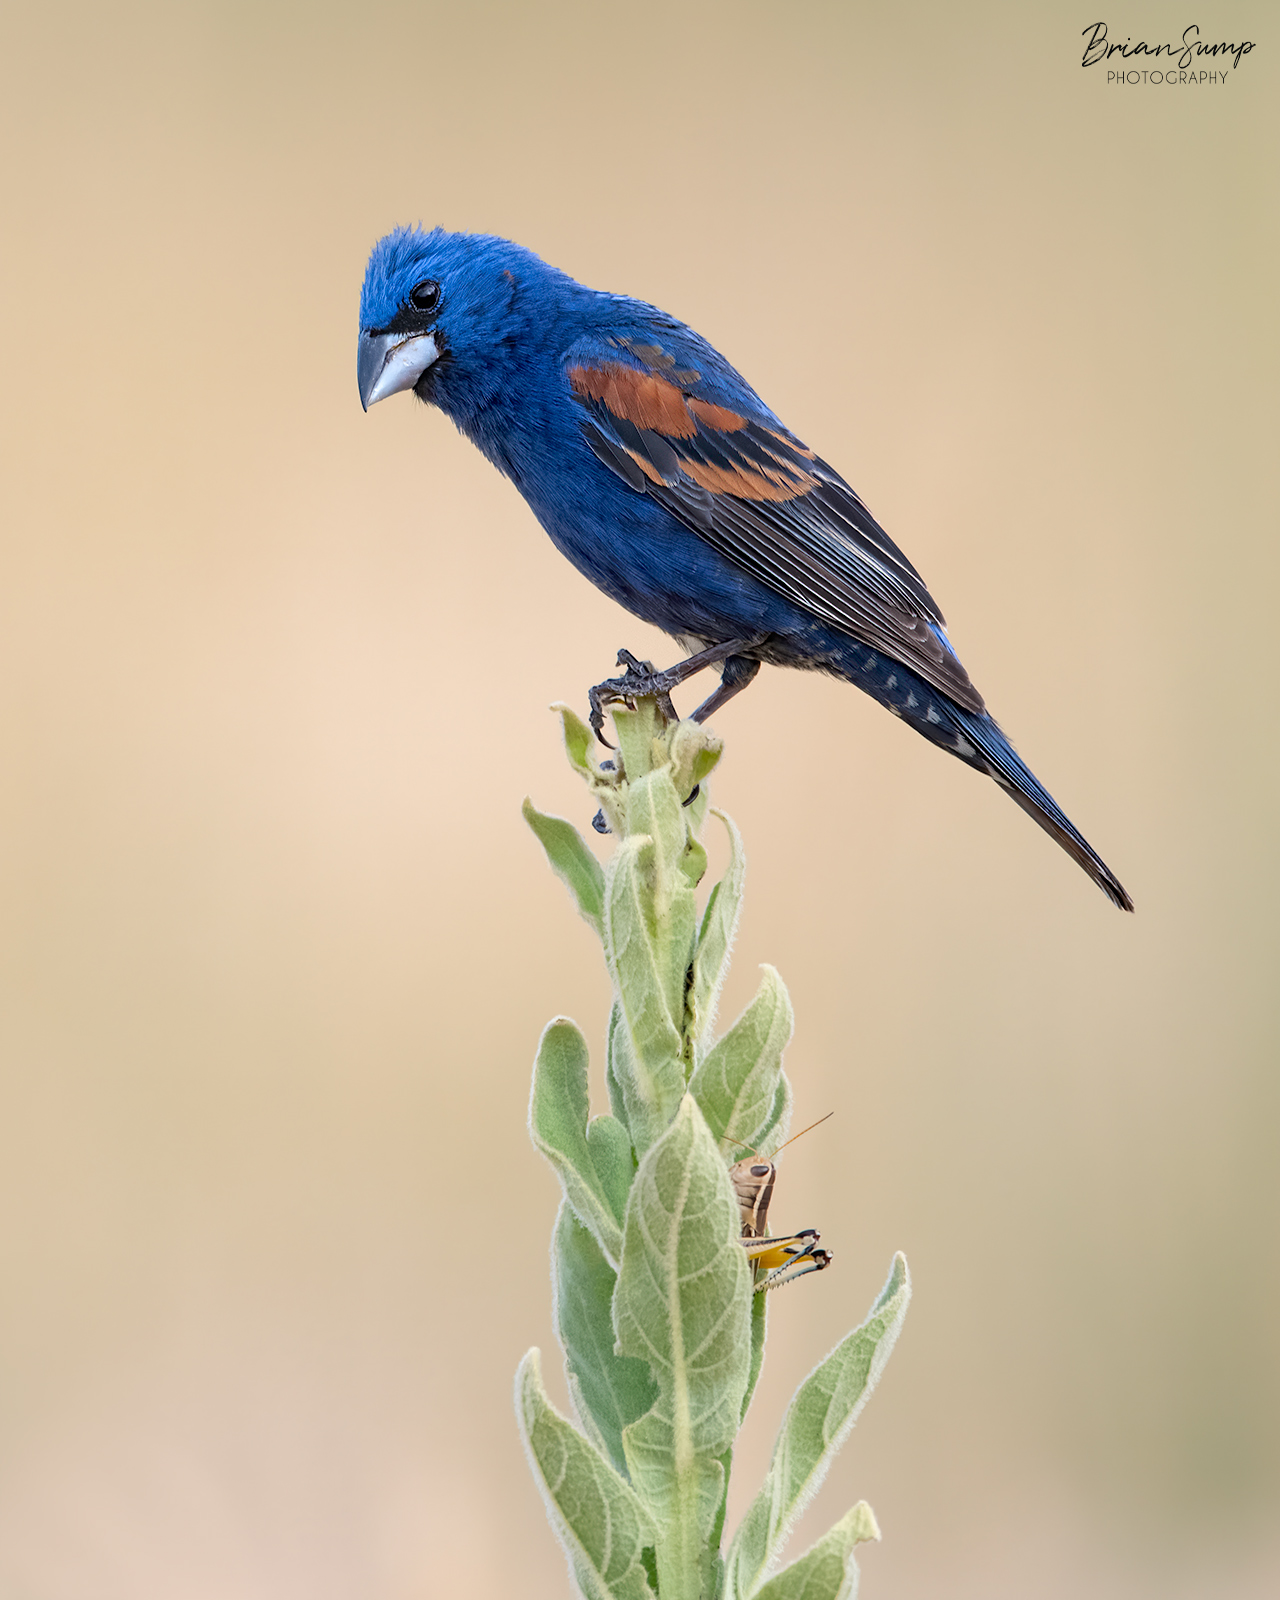 Name:  20200722-Blue-Grosbeak-Hide-and-seek-Brian-Sump_BMS5214-7-FORUM-SIG-touch.jpg